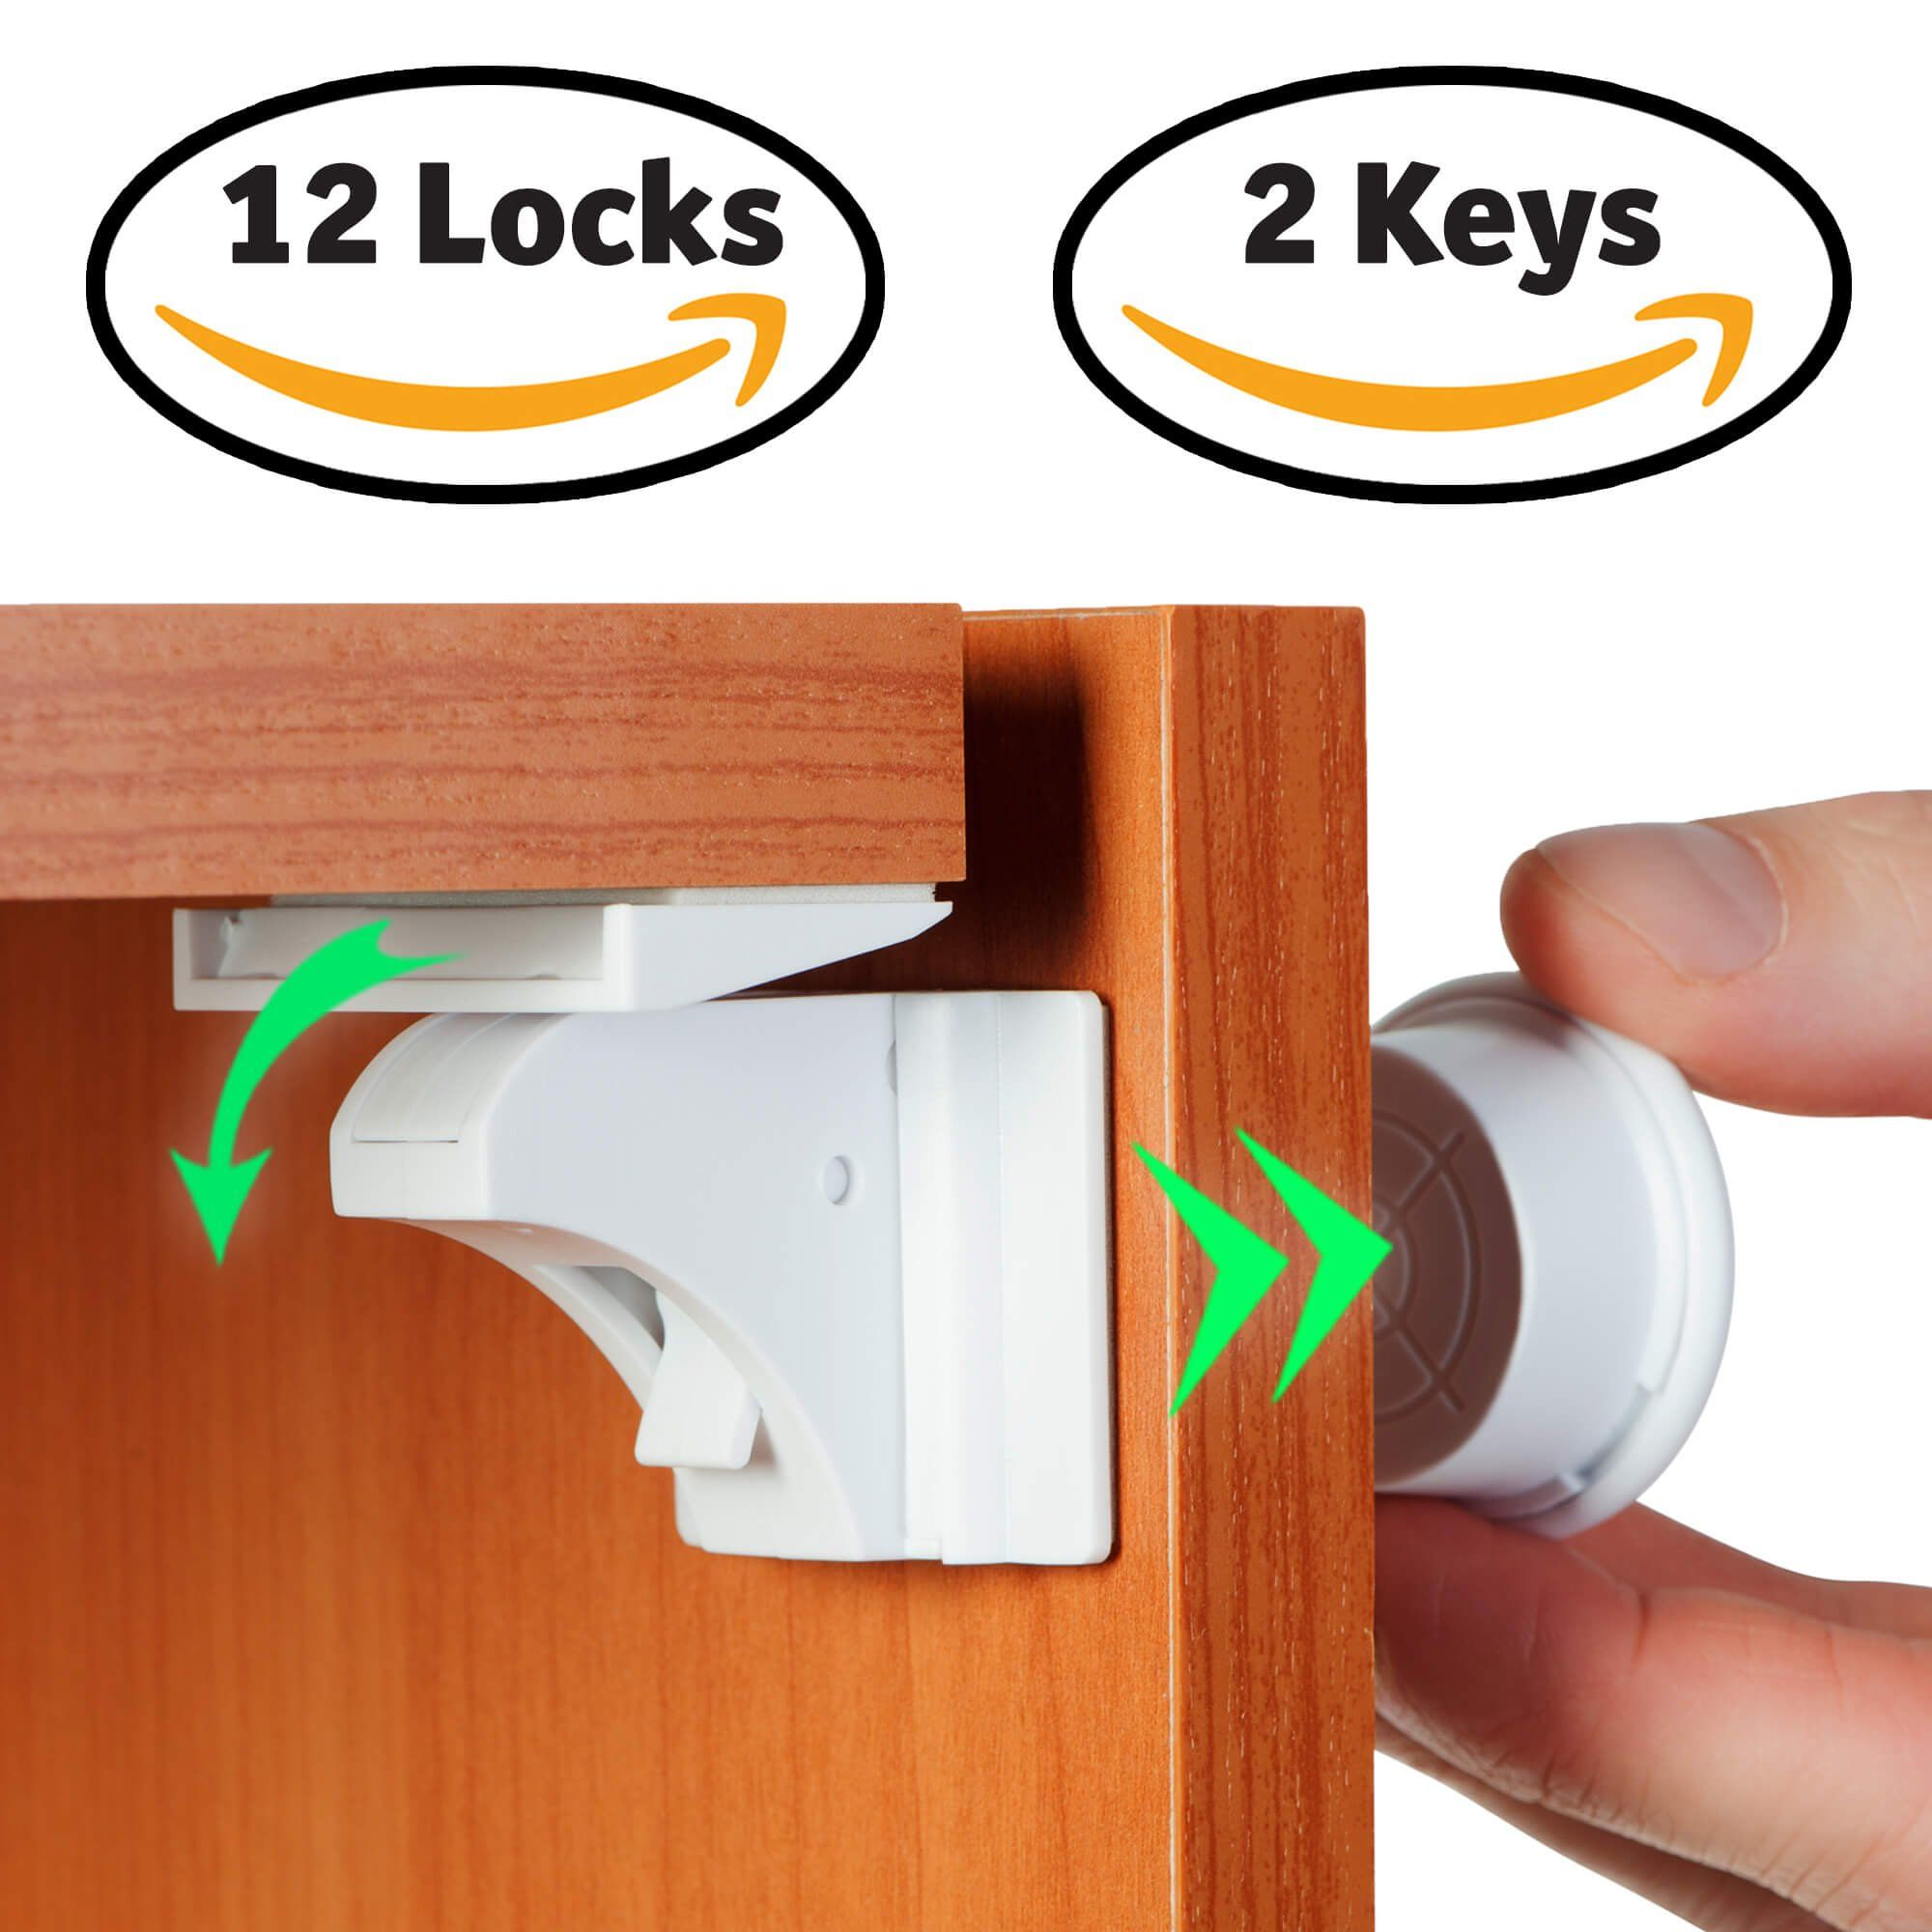 product keys lock china locks desk drawer tubular with furniture hjynvxbrhlku